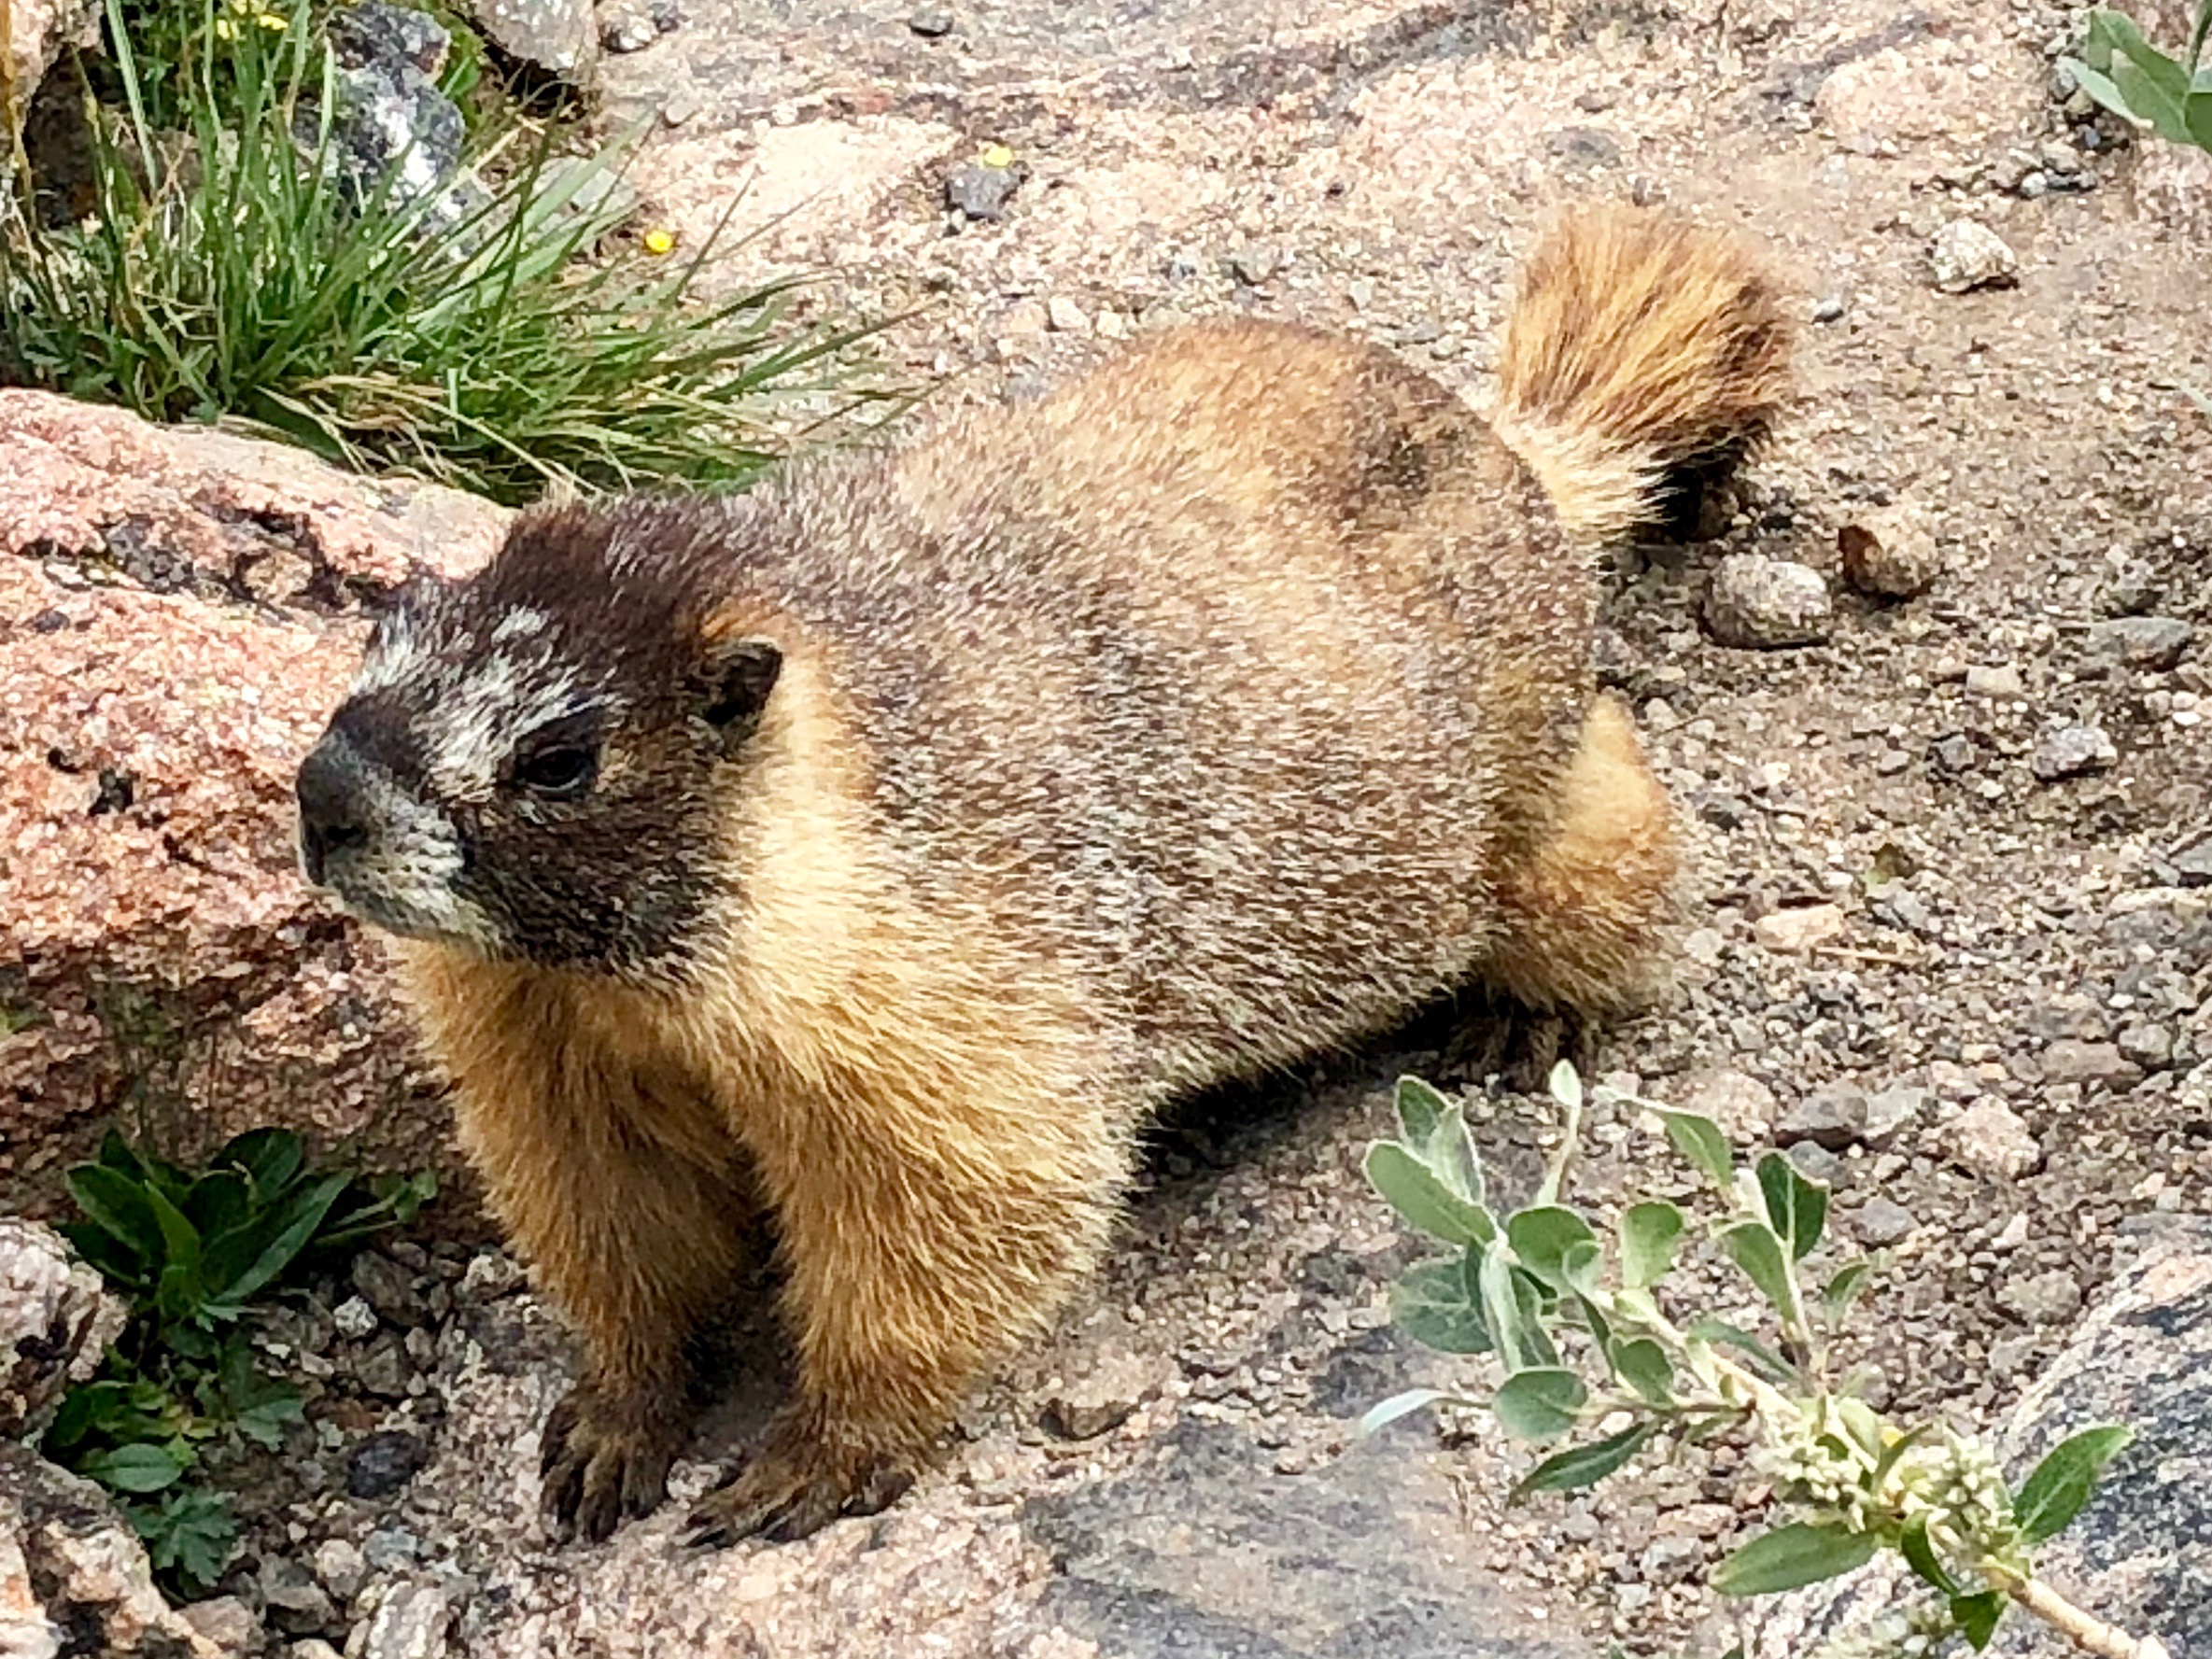 A very relaxed Marmot was waiting at the top of the waterfall to greet each person in hopes of a handout.